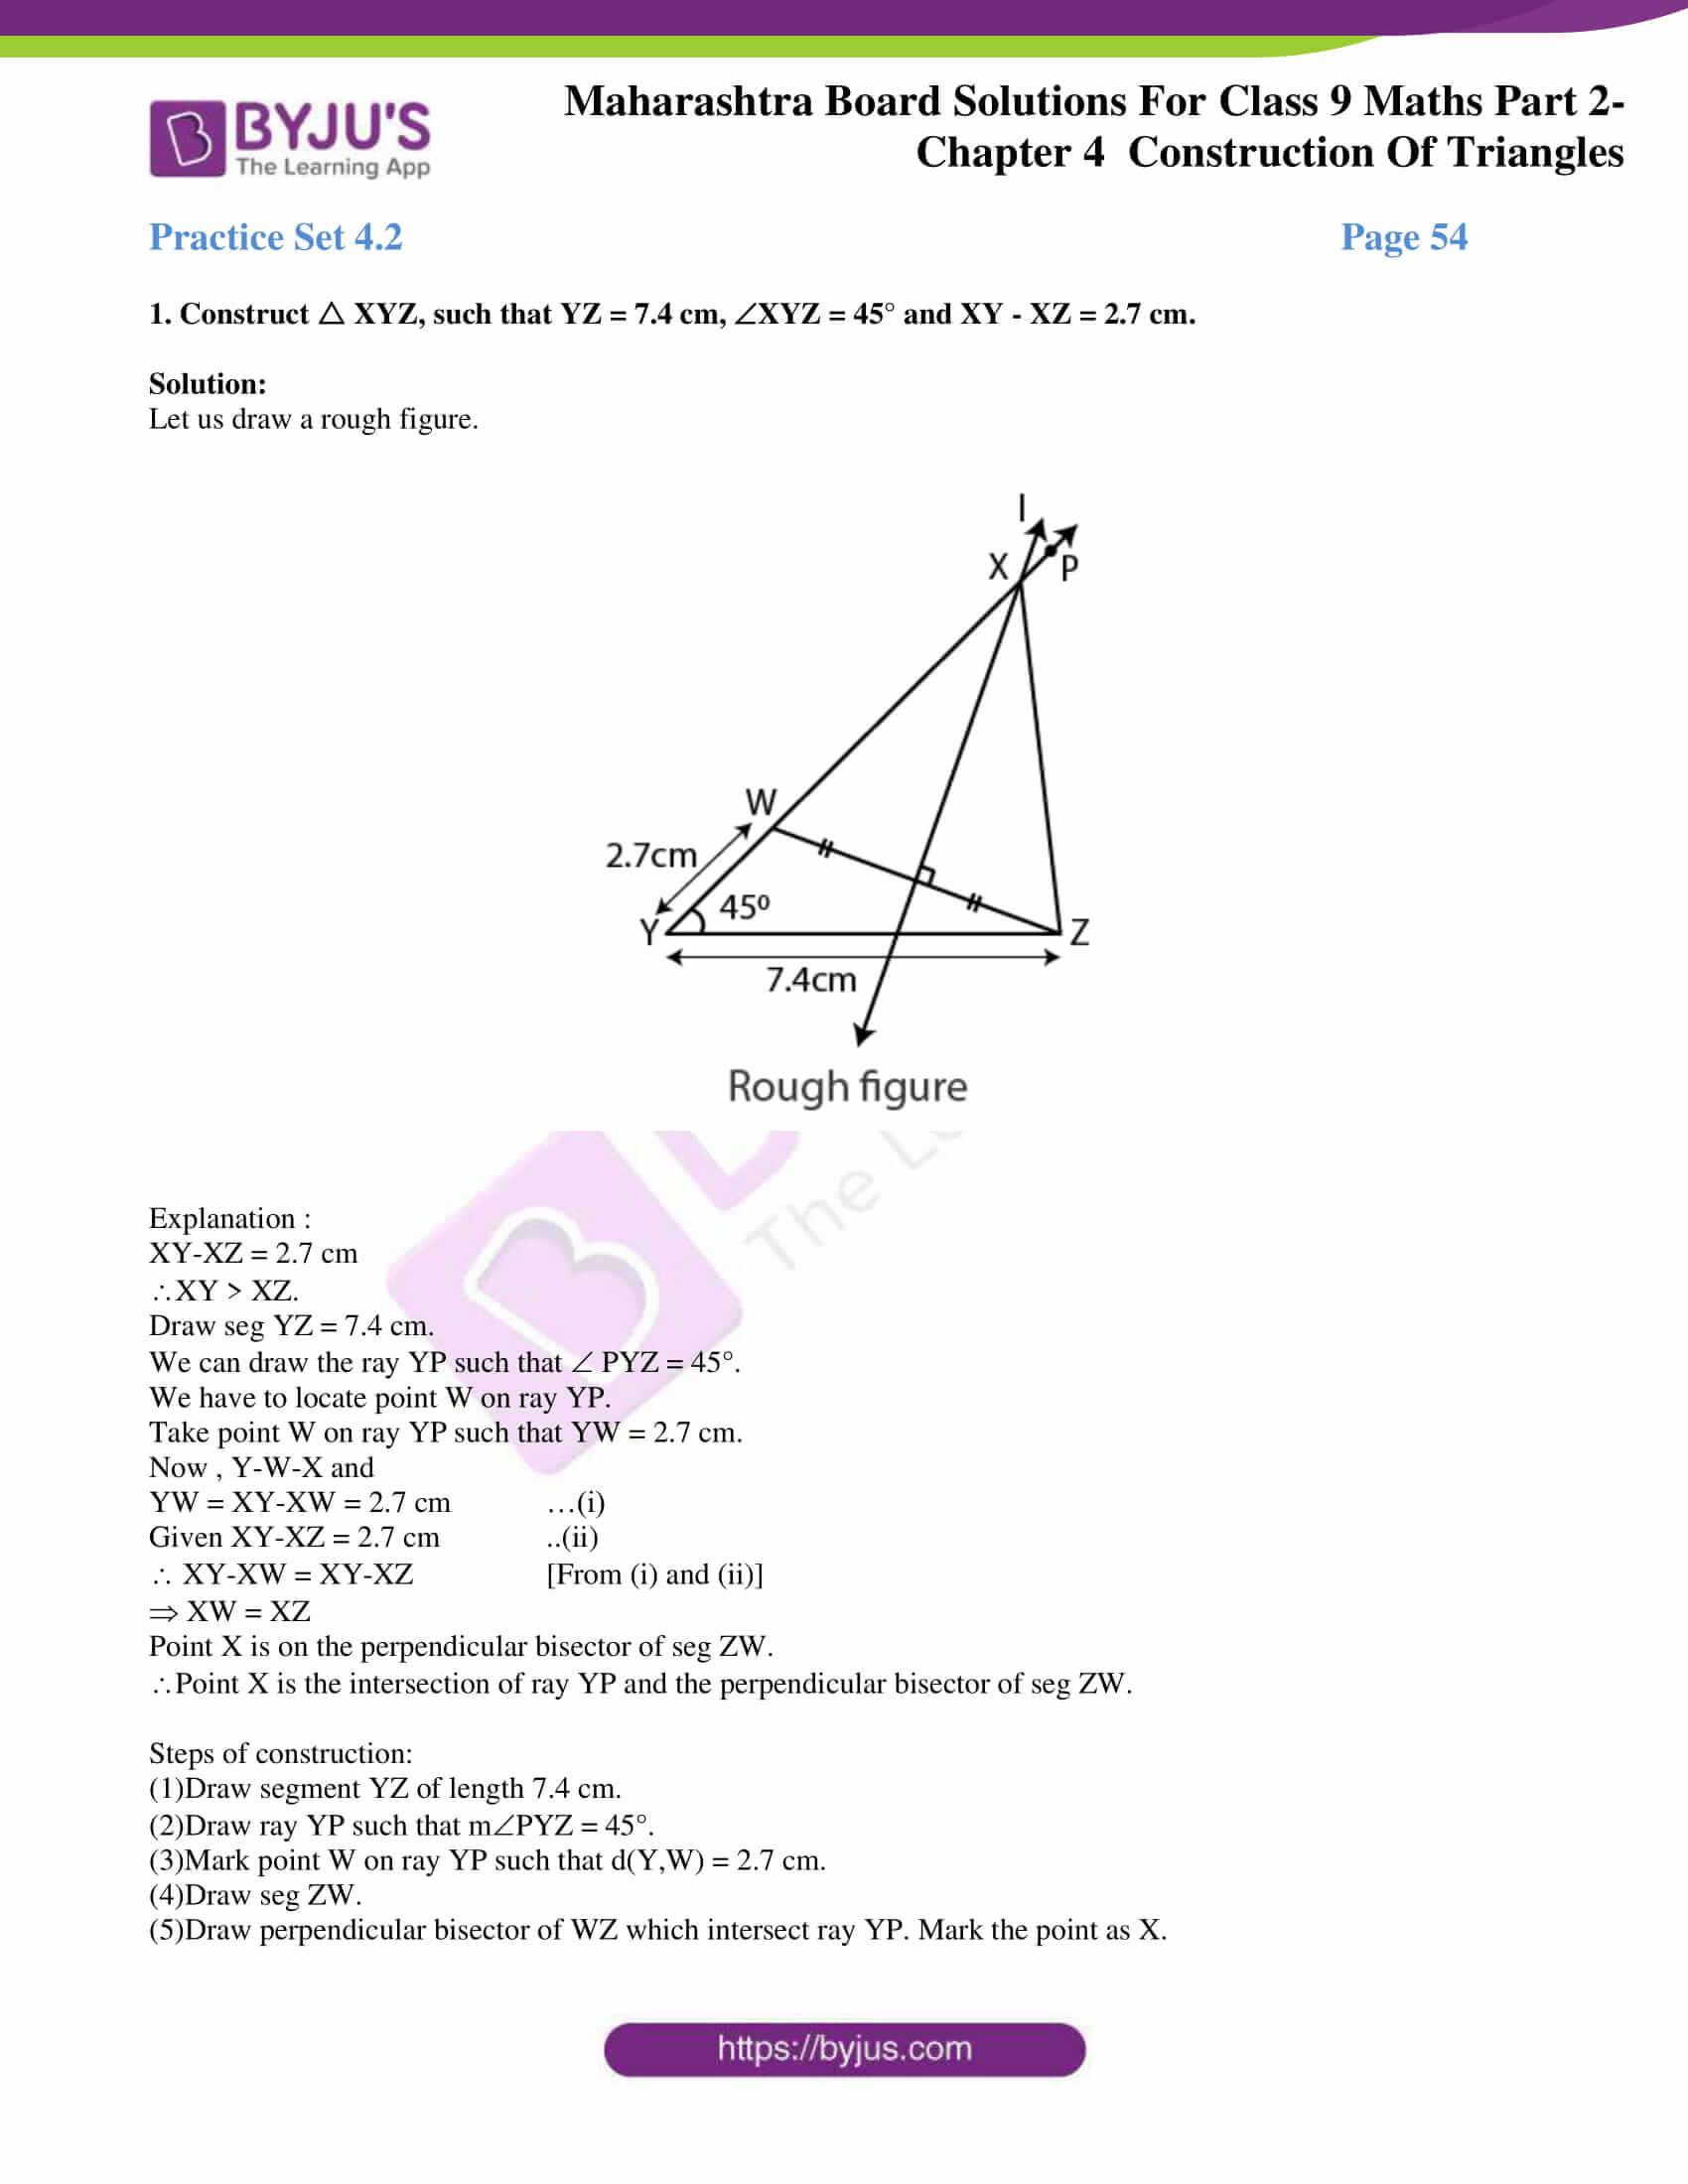 msbshse solutions for class 9 maths part 2 chapter 4 06